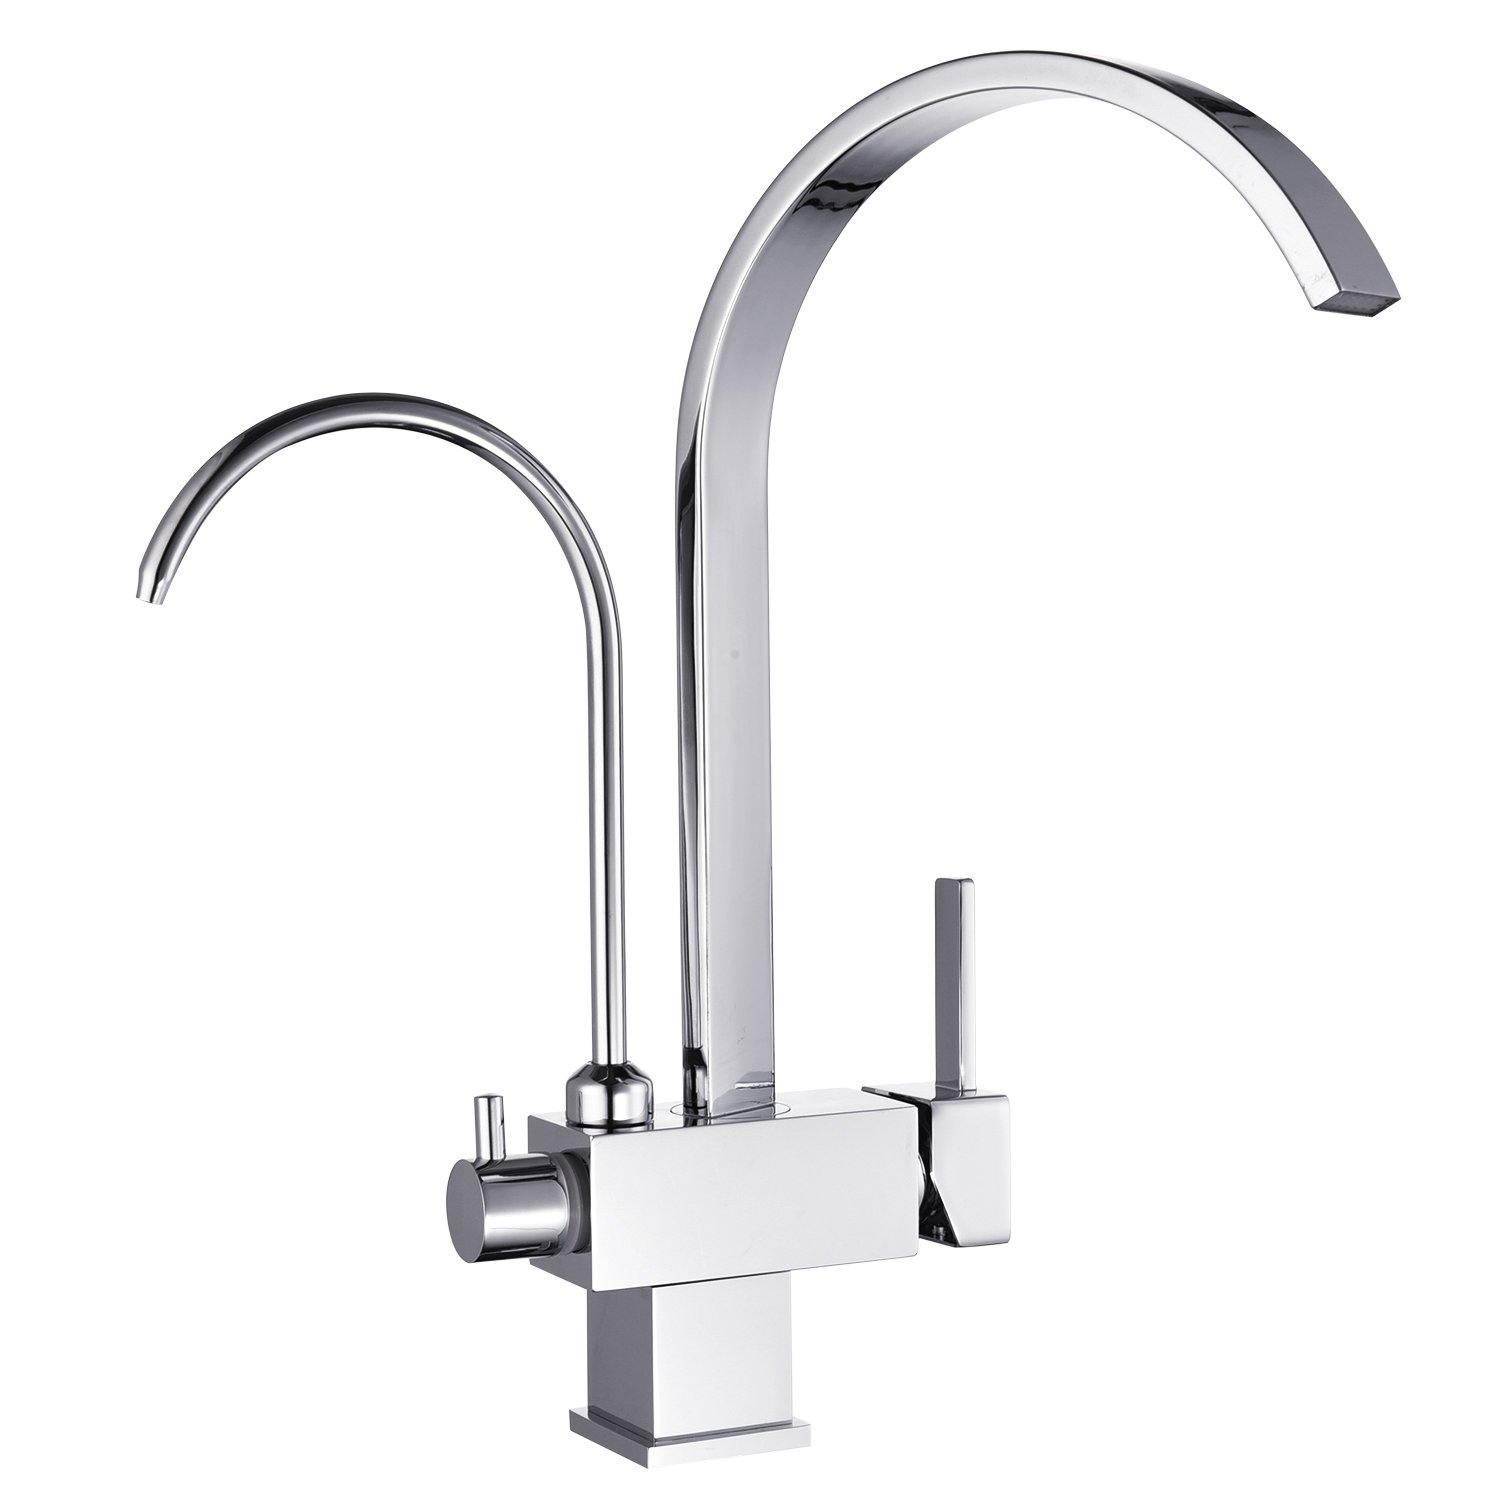 Filter Tap 3 Way Tri-Flow Water Kitchen Sink Mixer Tap Chrome Peppermint Hapilife